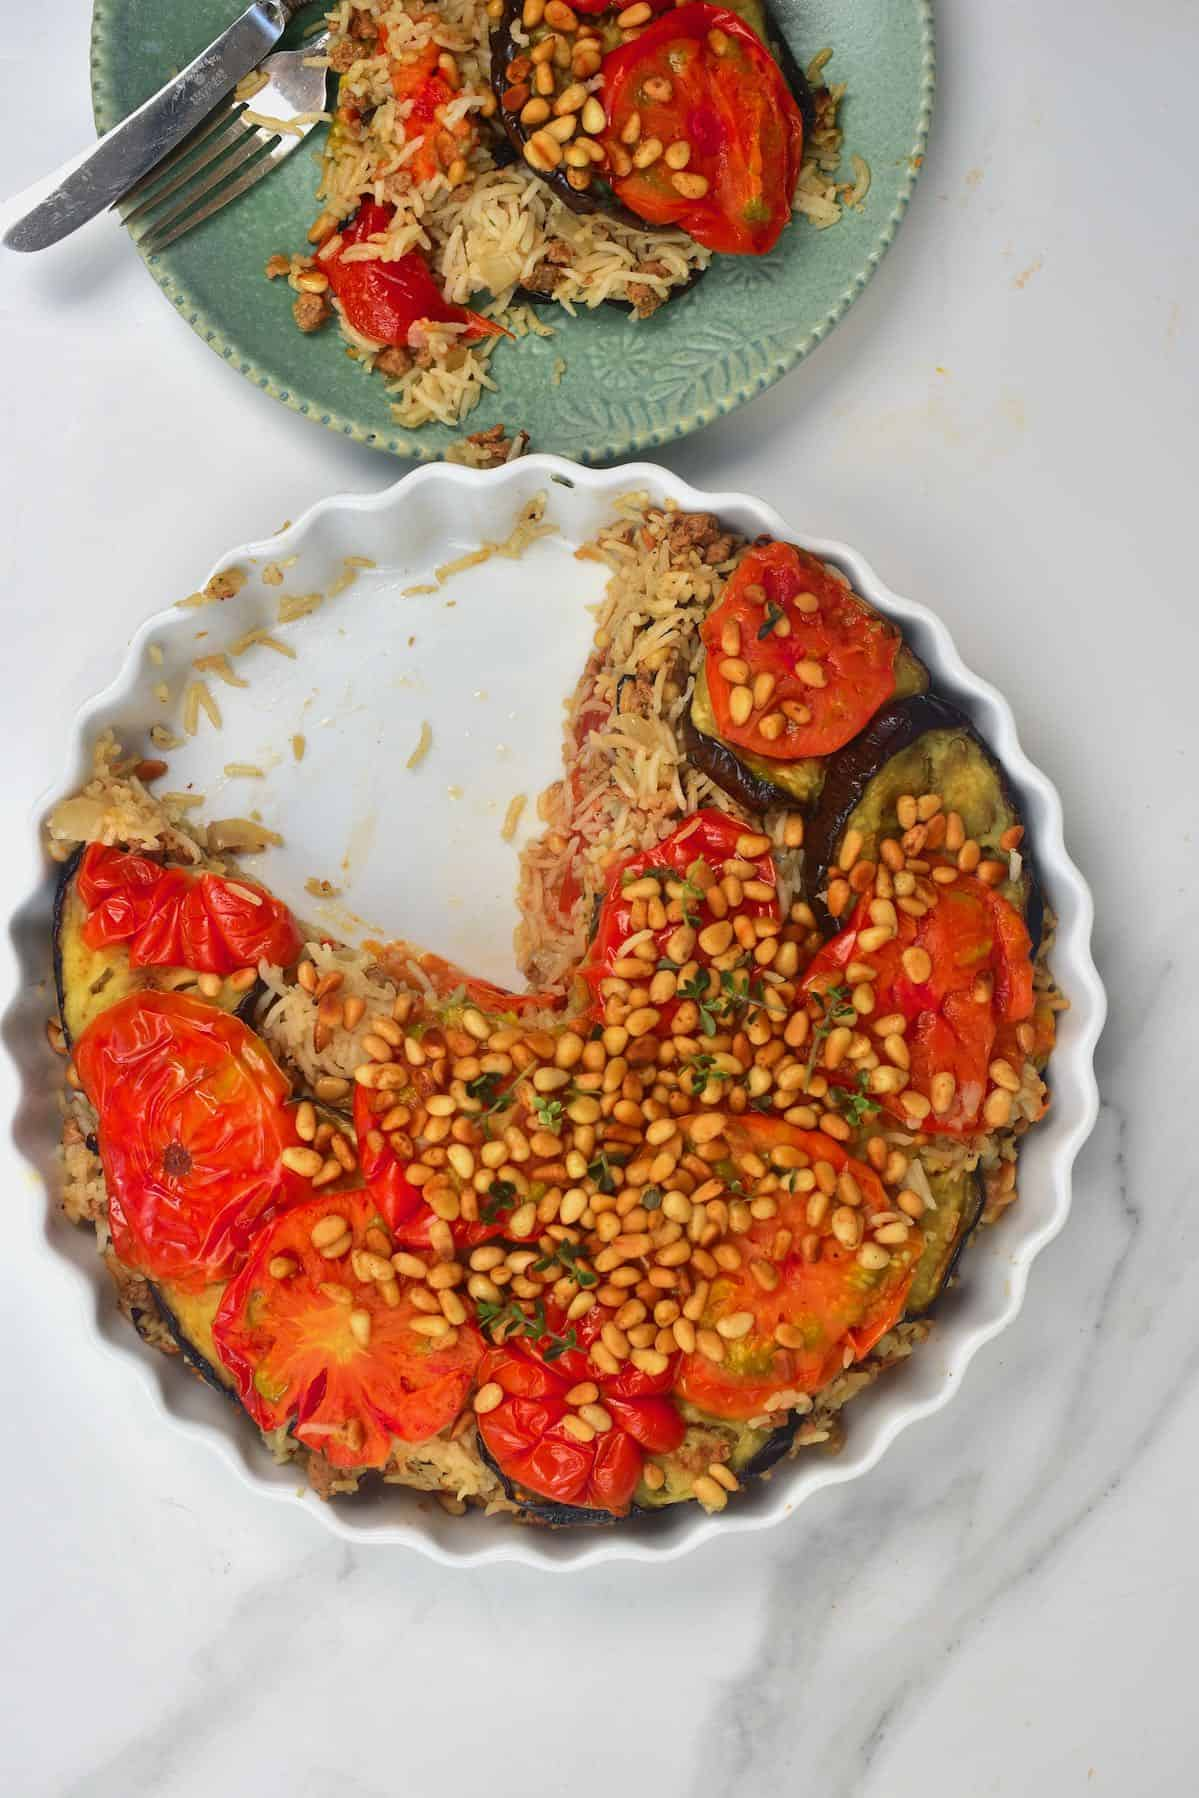 Maqluba in a baking dish with a slice cut off